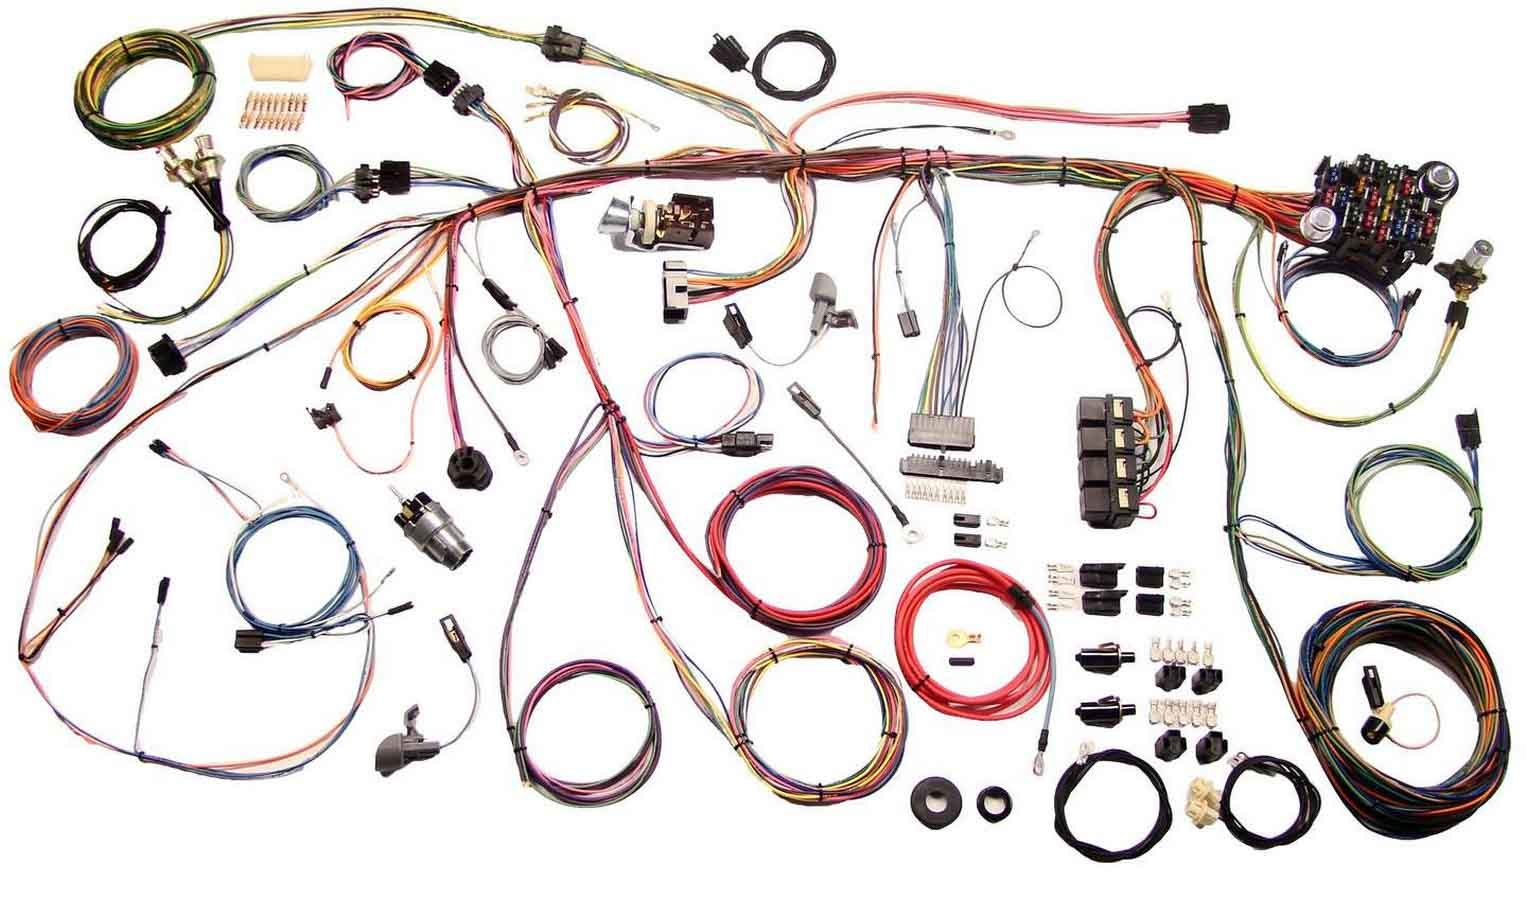 American Autowire 510177 Car Wiring Harness, Classic Update, Complete, Mustang 1969, Kit